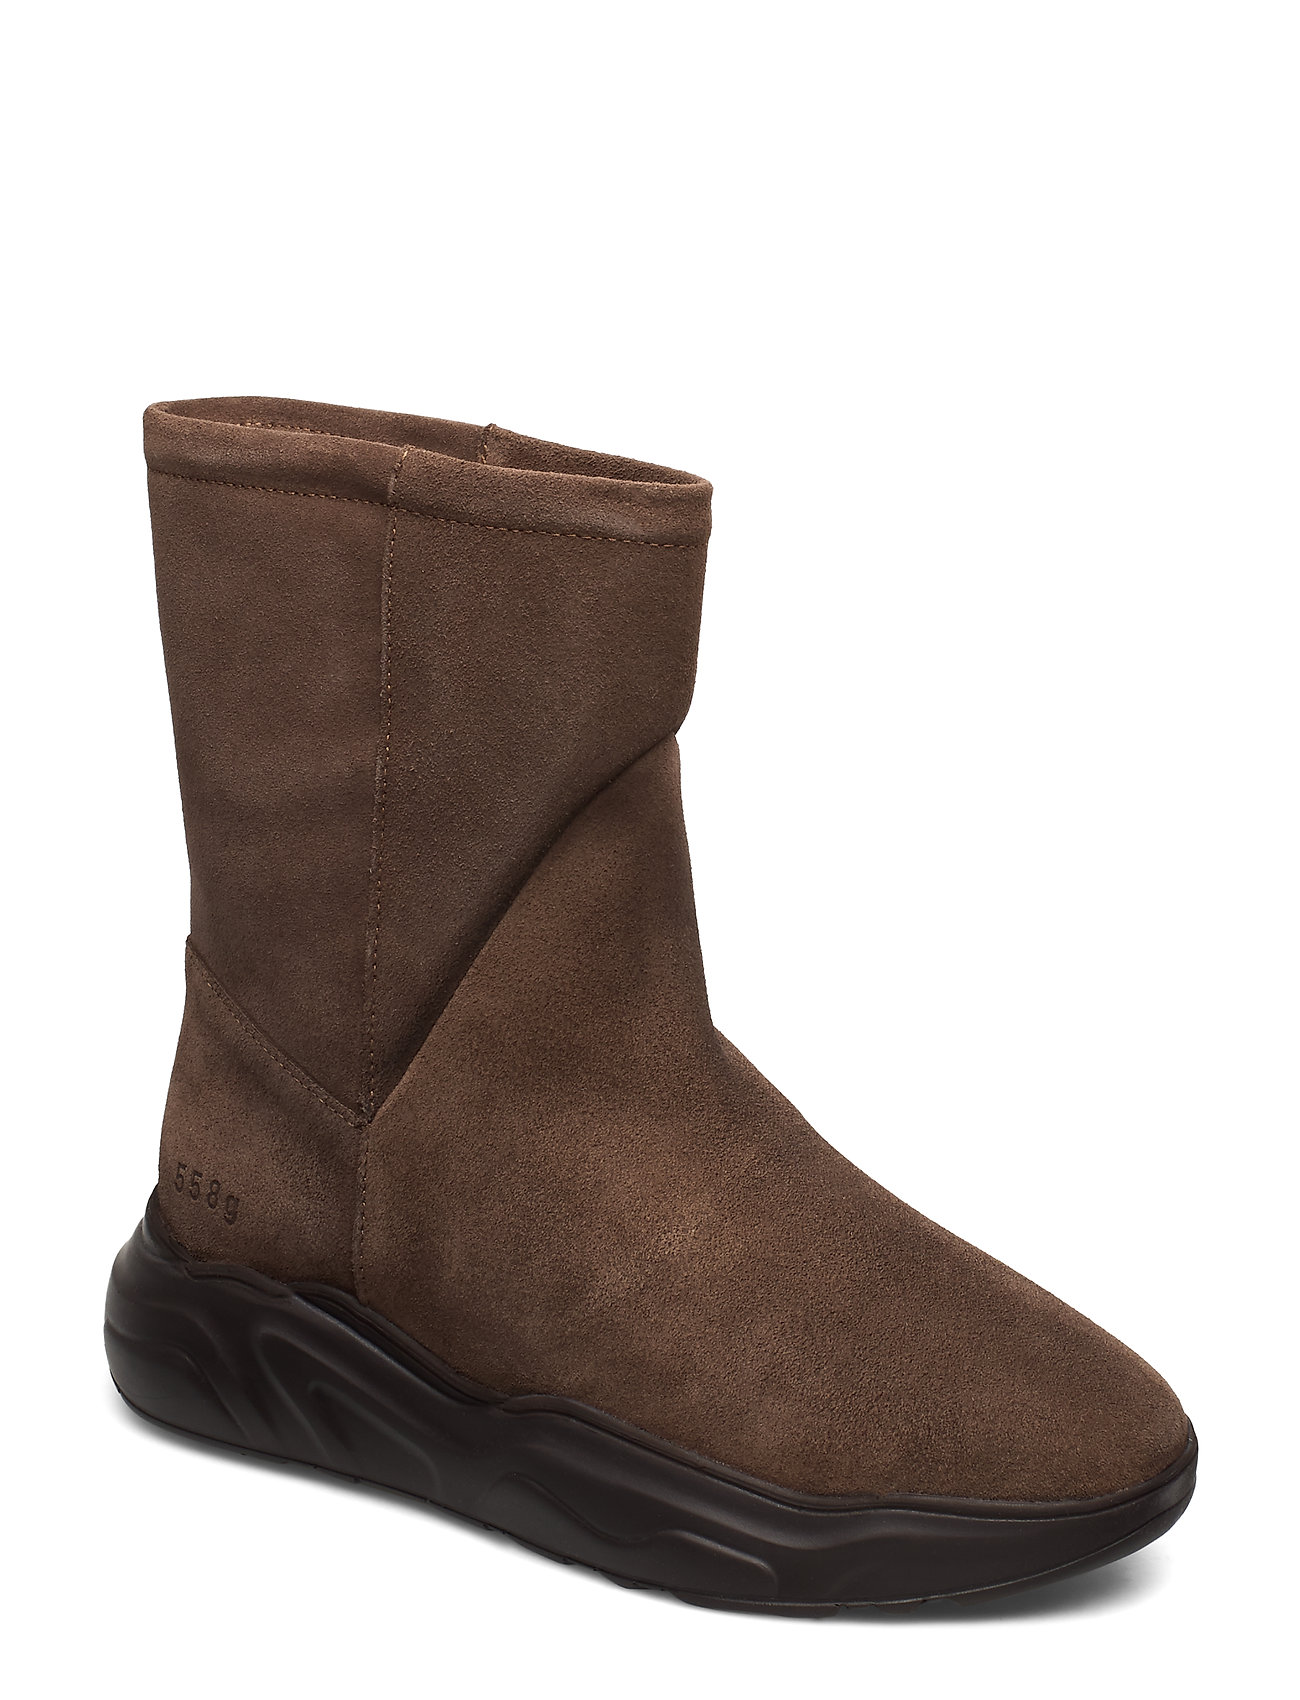 Image of 558g Boot Walnut Suede Shoes Boots Ankle Boots Ankle Boots Flat Heel Brun Gram (3230589145)